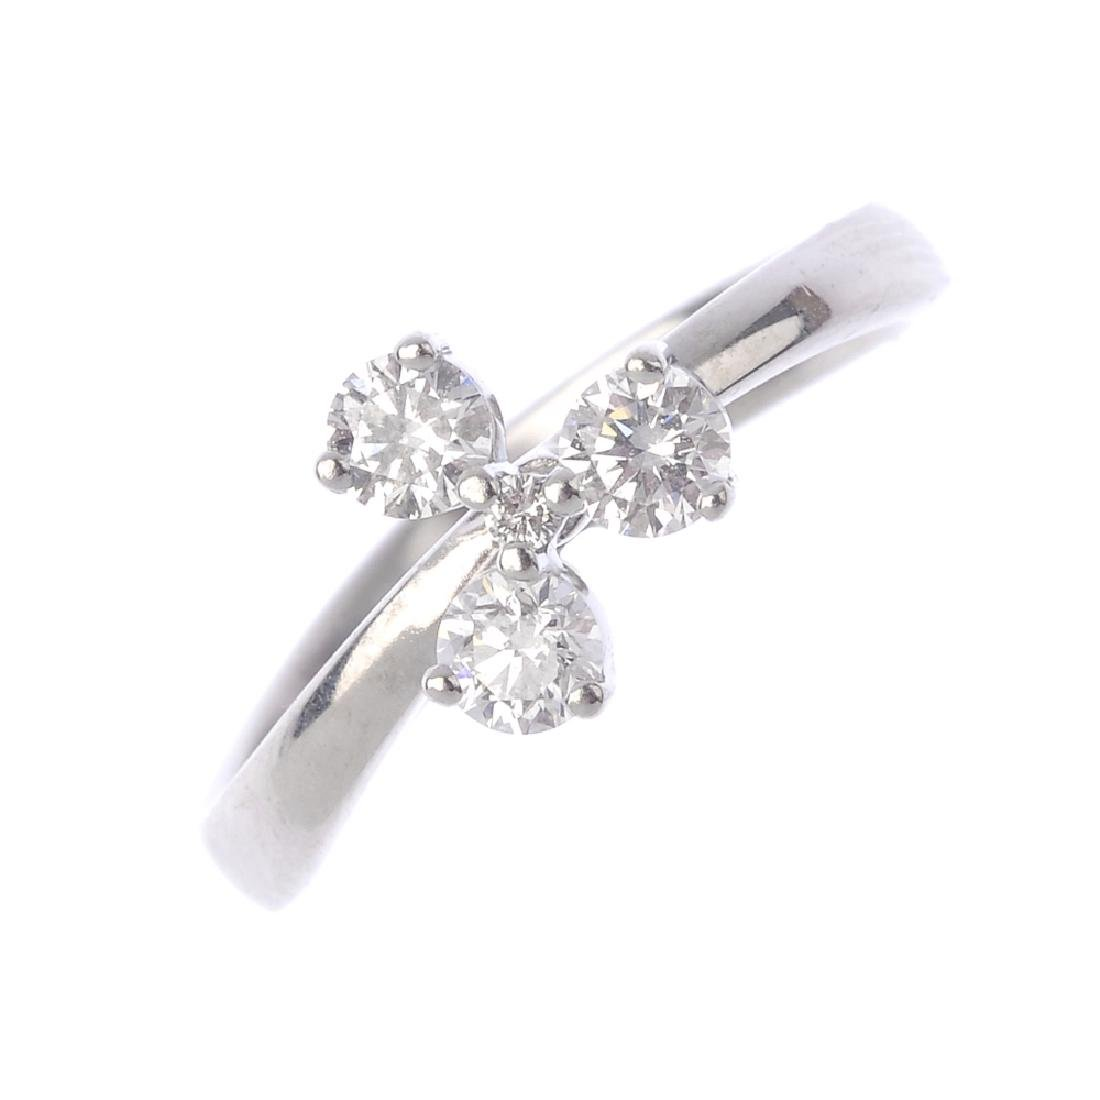 DE BEERS -  an 18ct gold diamond floral dress ring. The